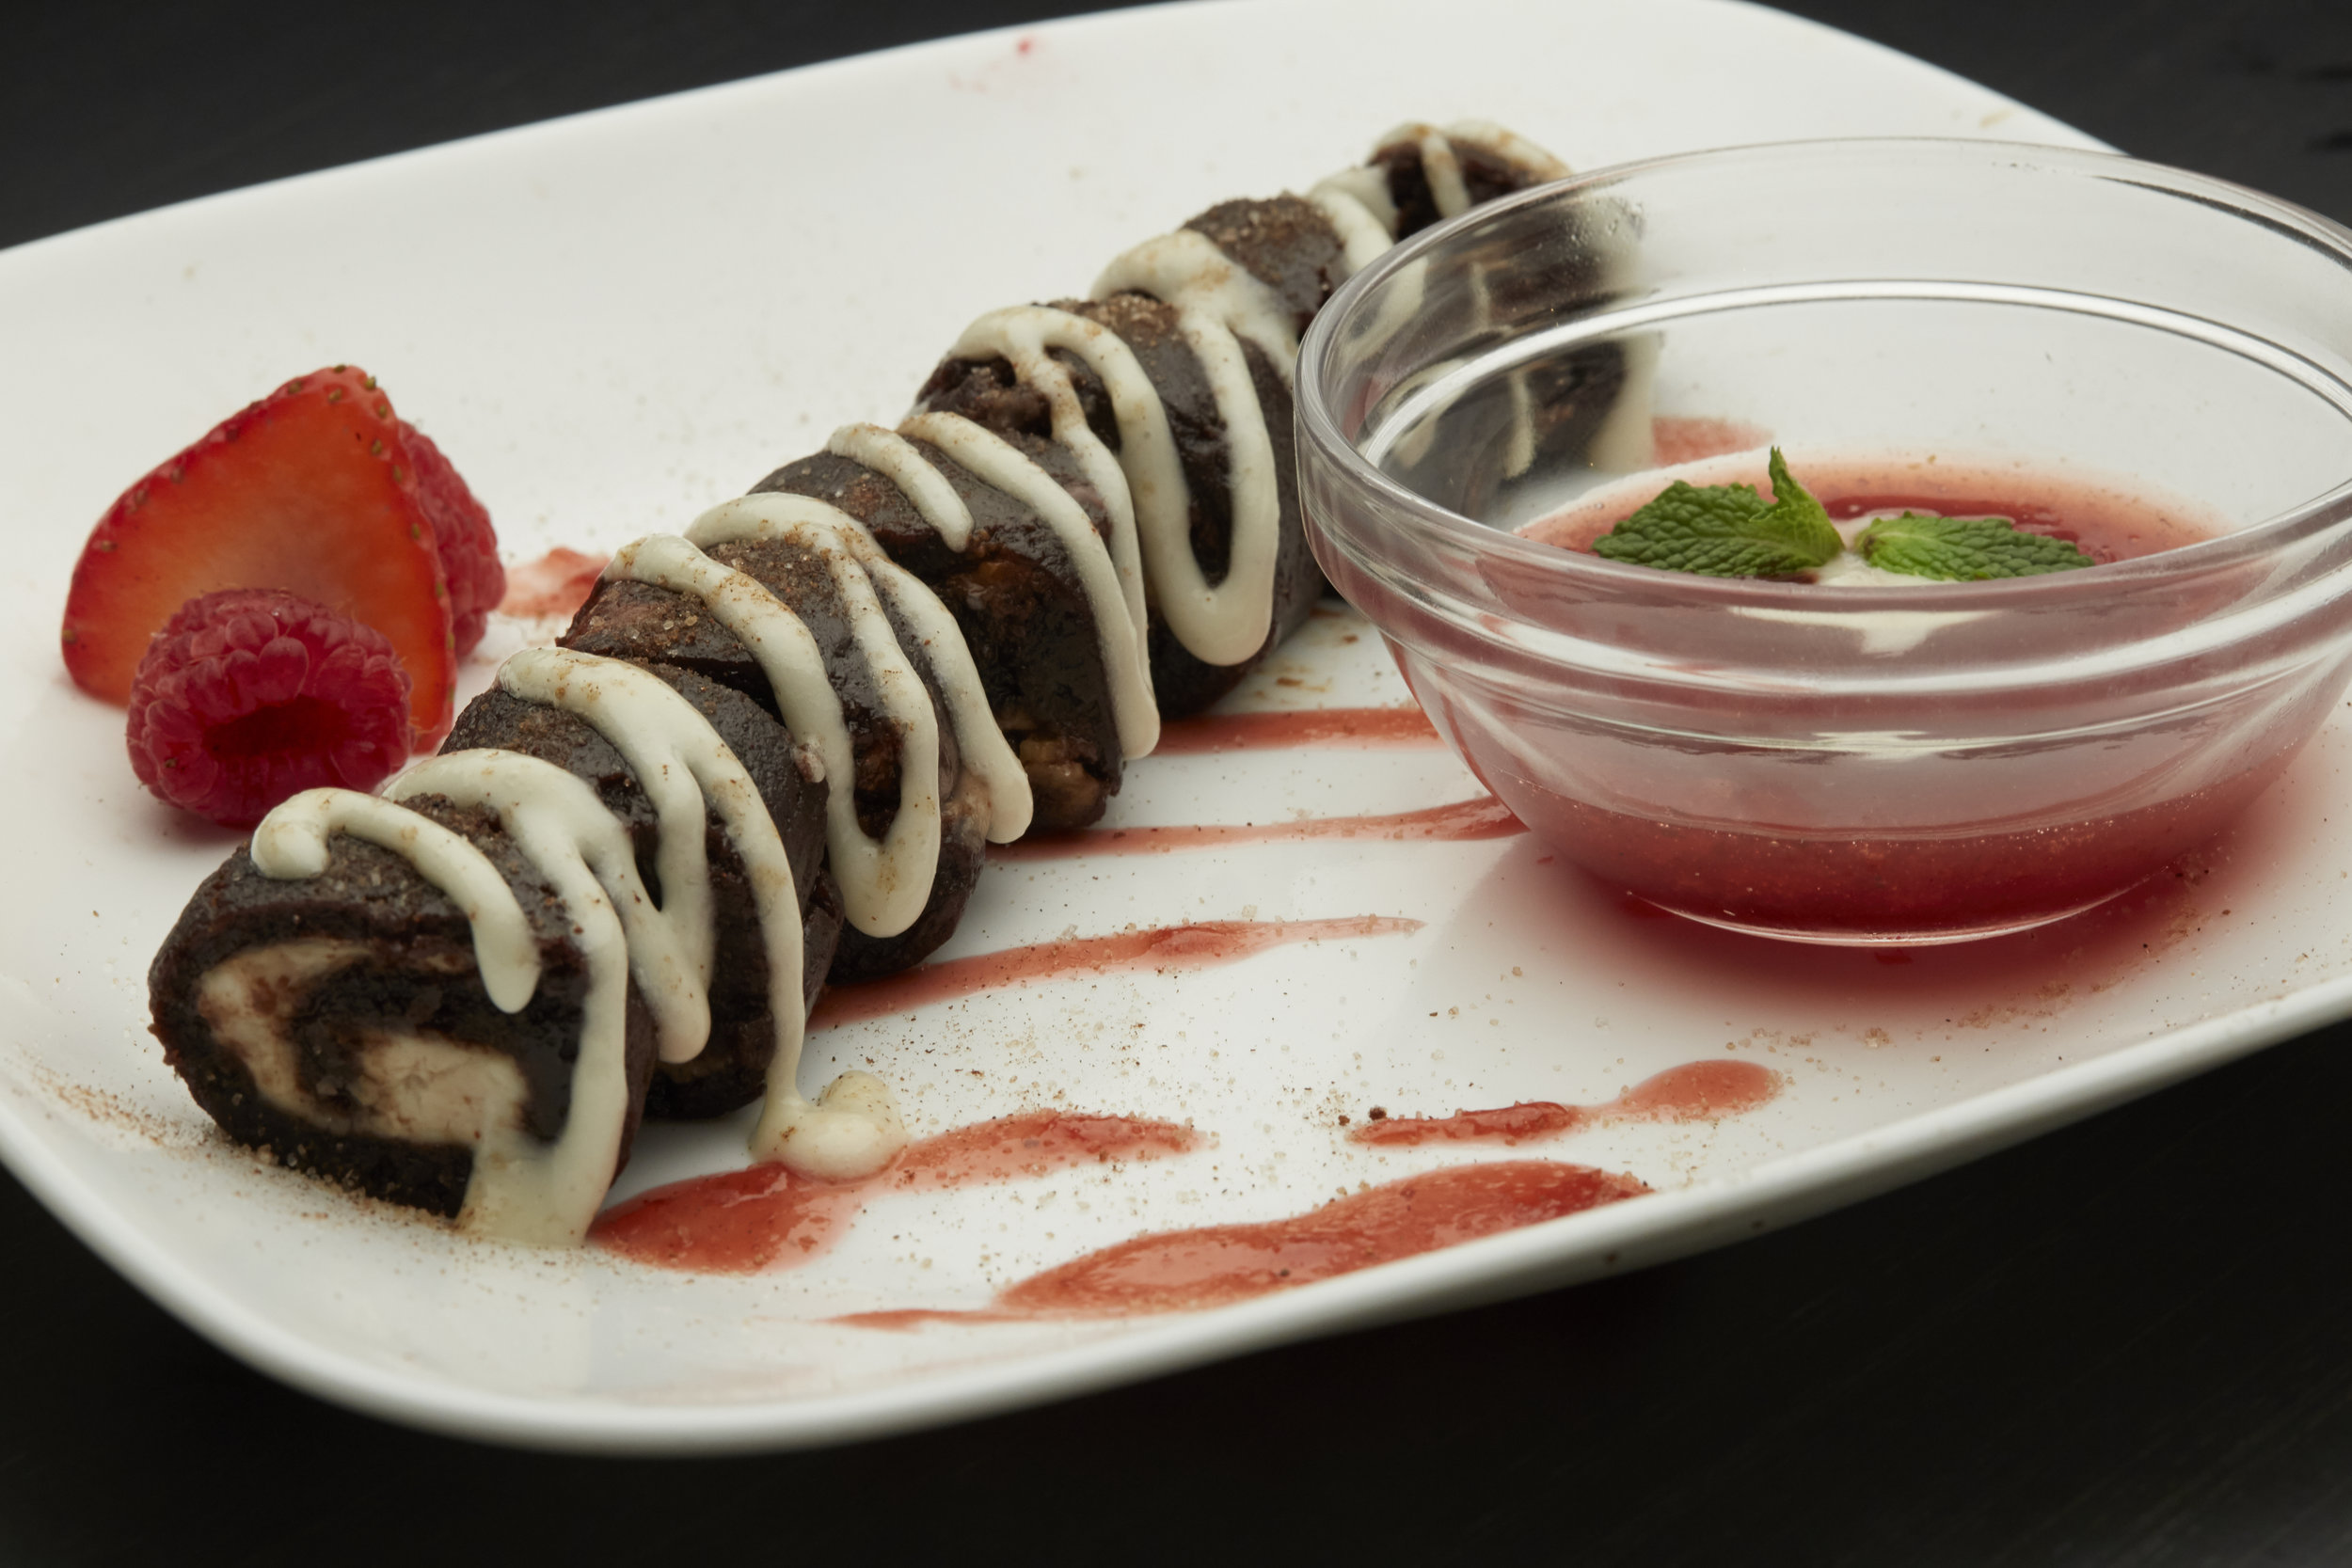 Sweet Sushi - Fudge brownie rolled with homemade strawberry and raspberry marmalade.